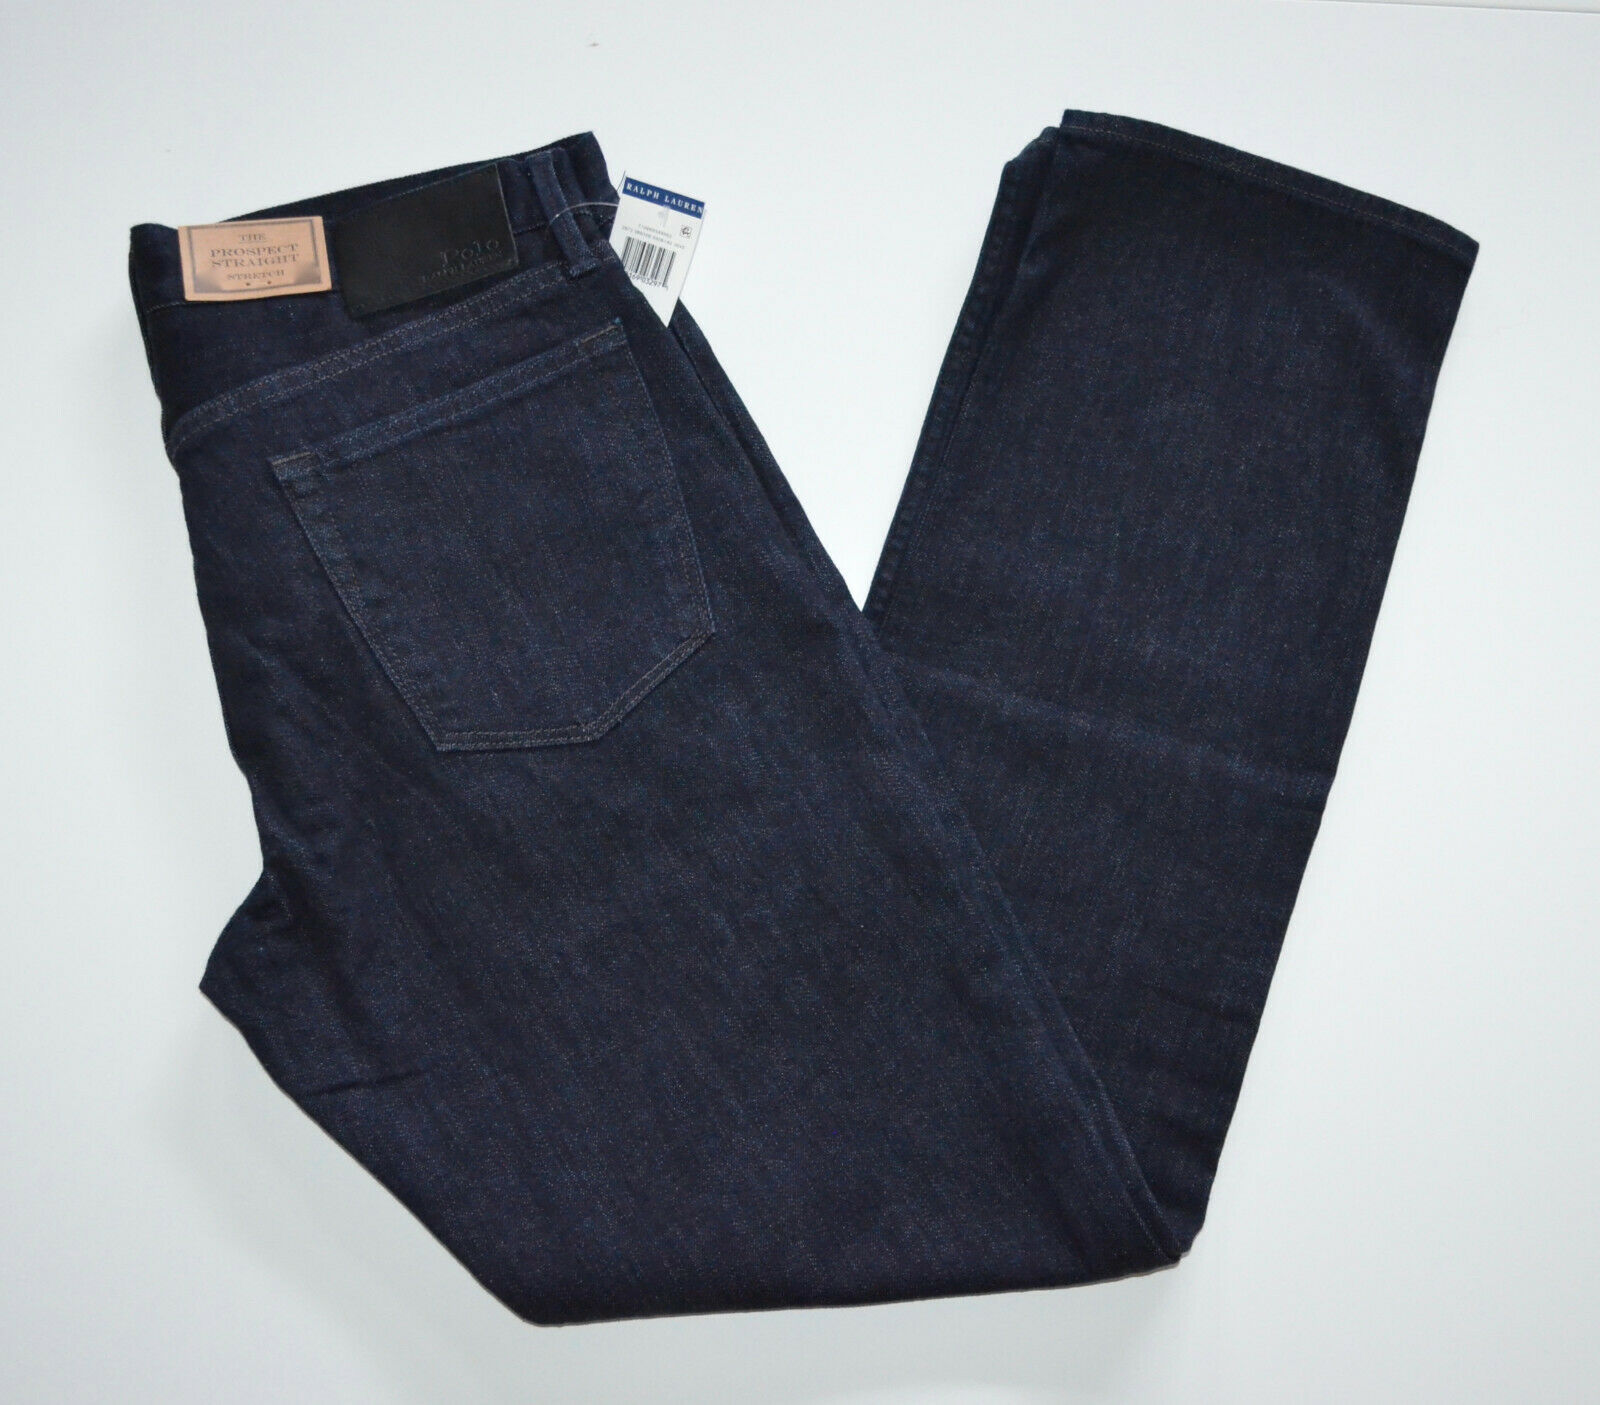 NWT Men's Polo Ralph Lauren Jeans The Prospect Straight, Dark bluee, W 33 L 30